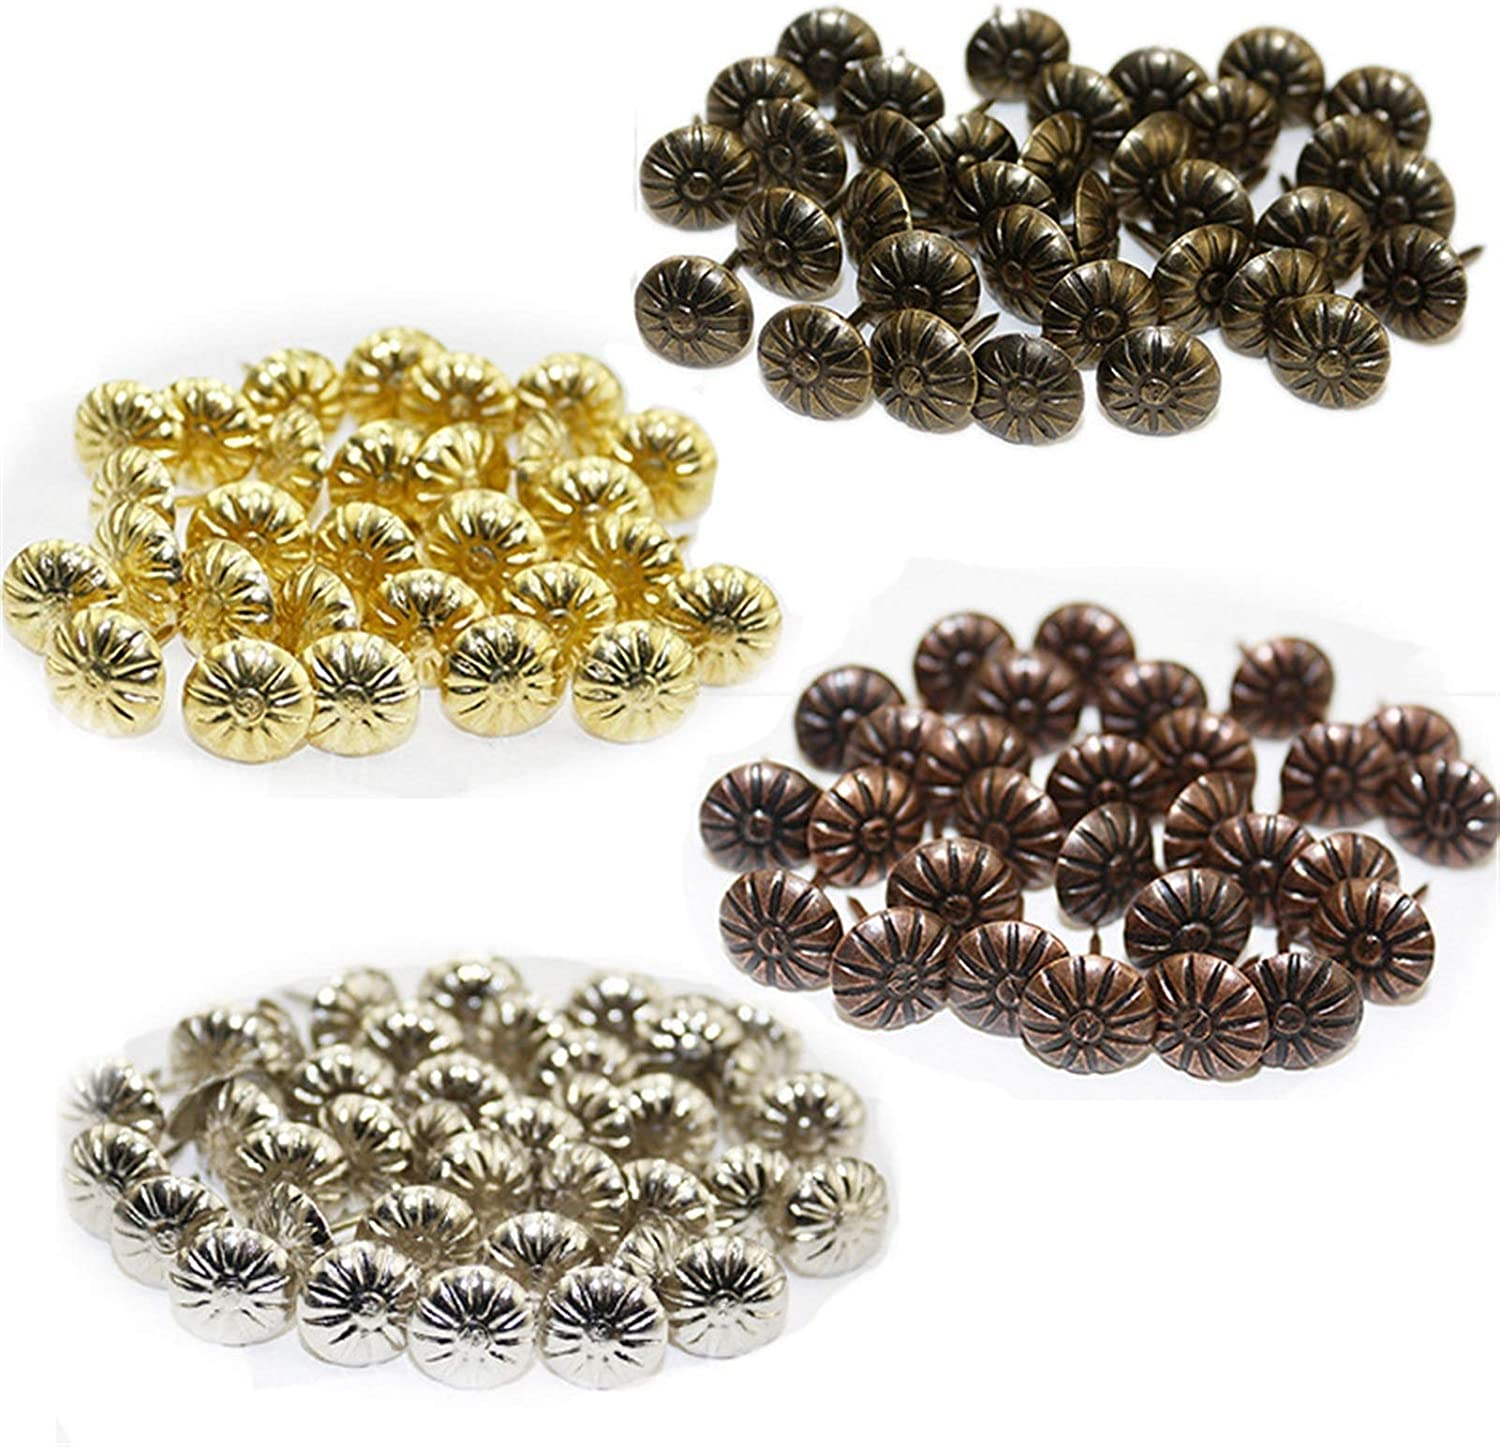 QJKW Brand new New Shipping Free Thumbtack 50pcs Retro Hardware Bronze Uph Brass Accessories